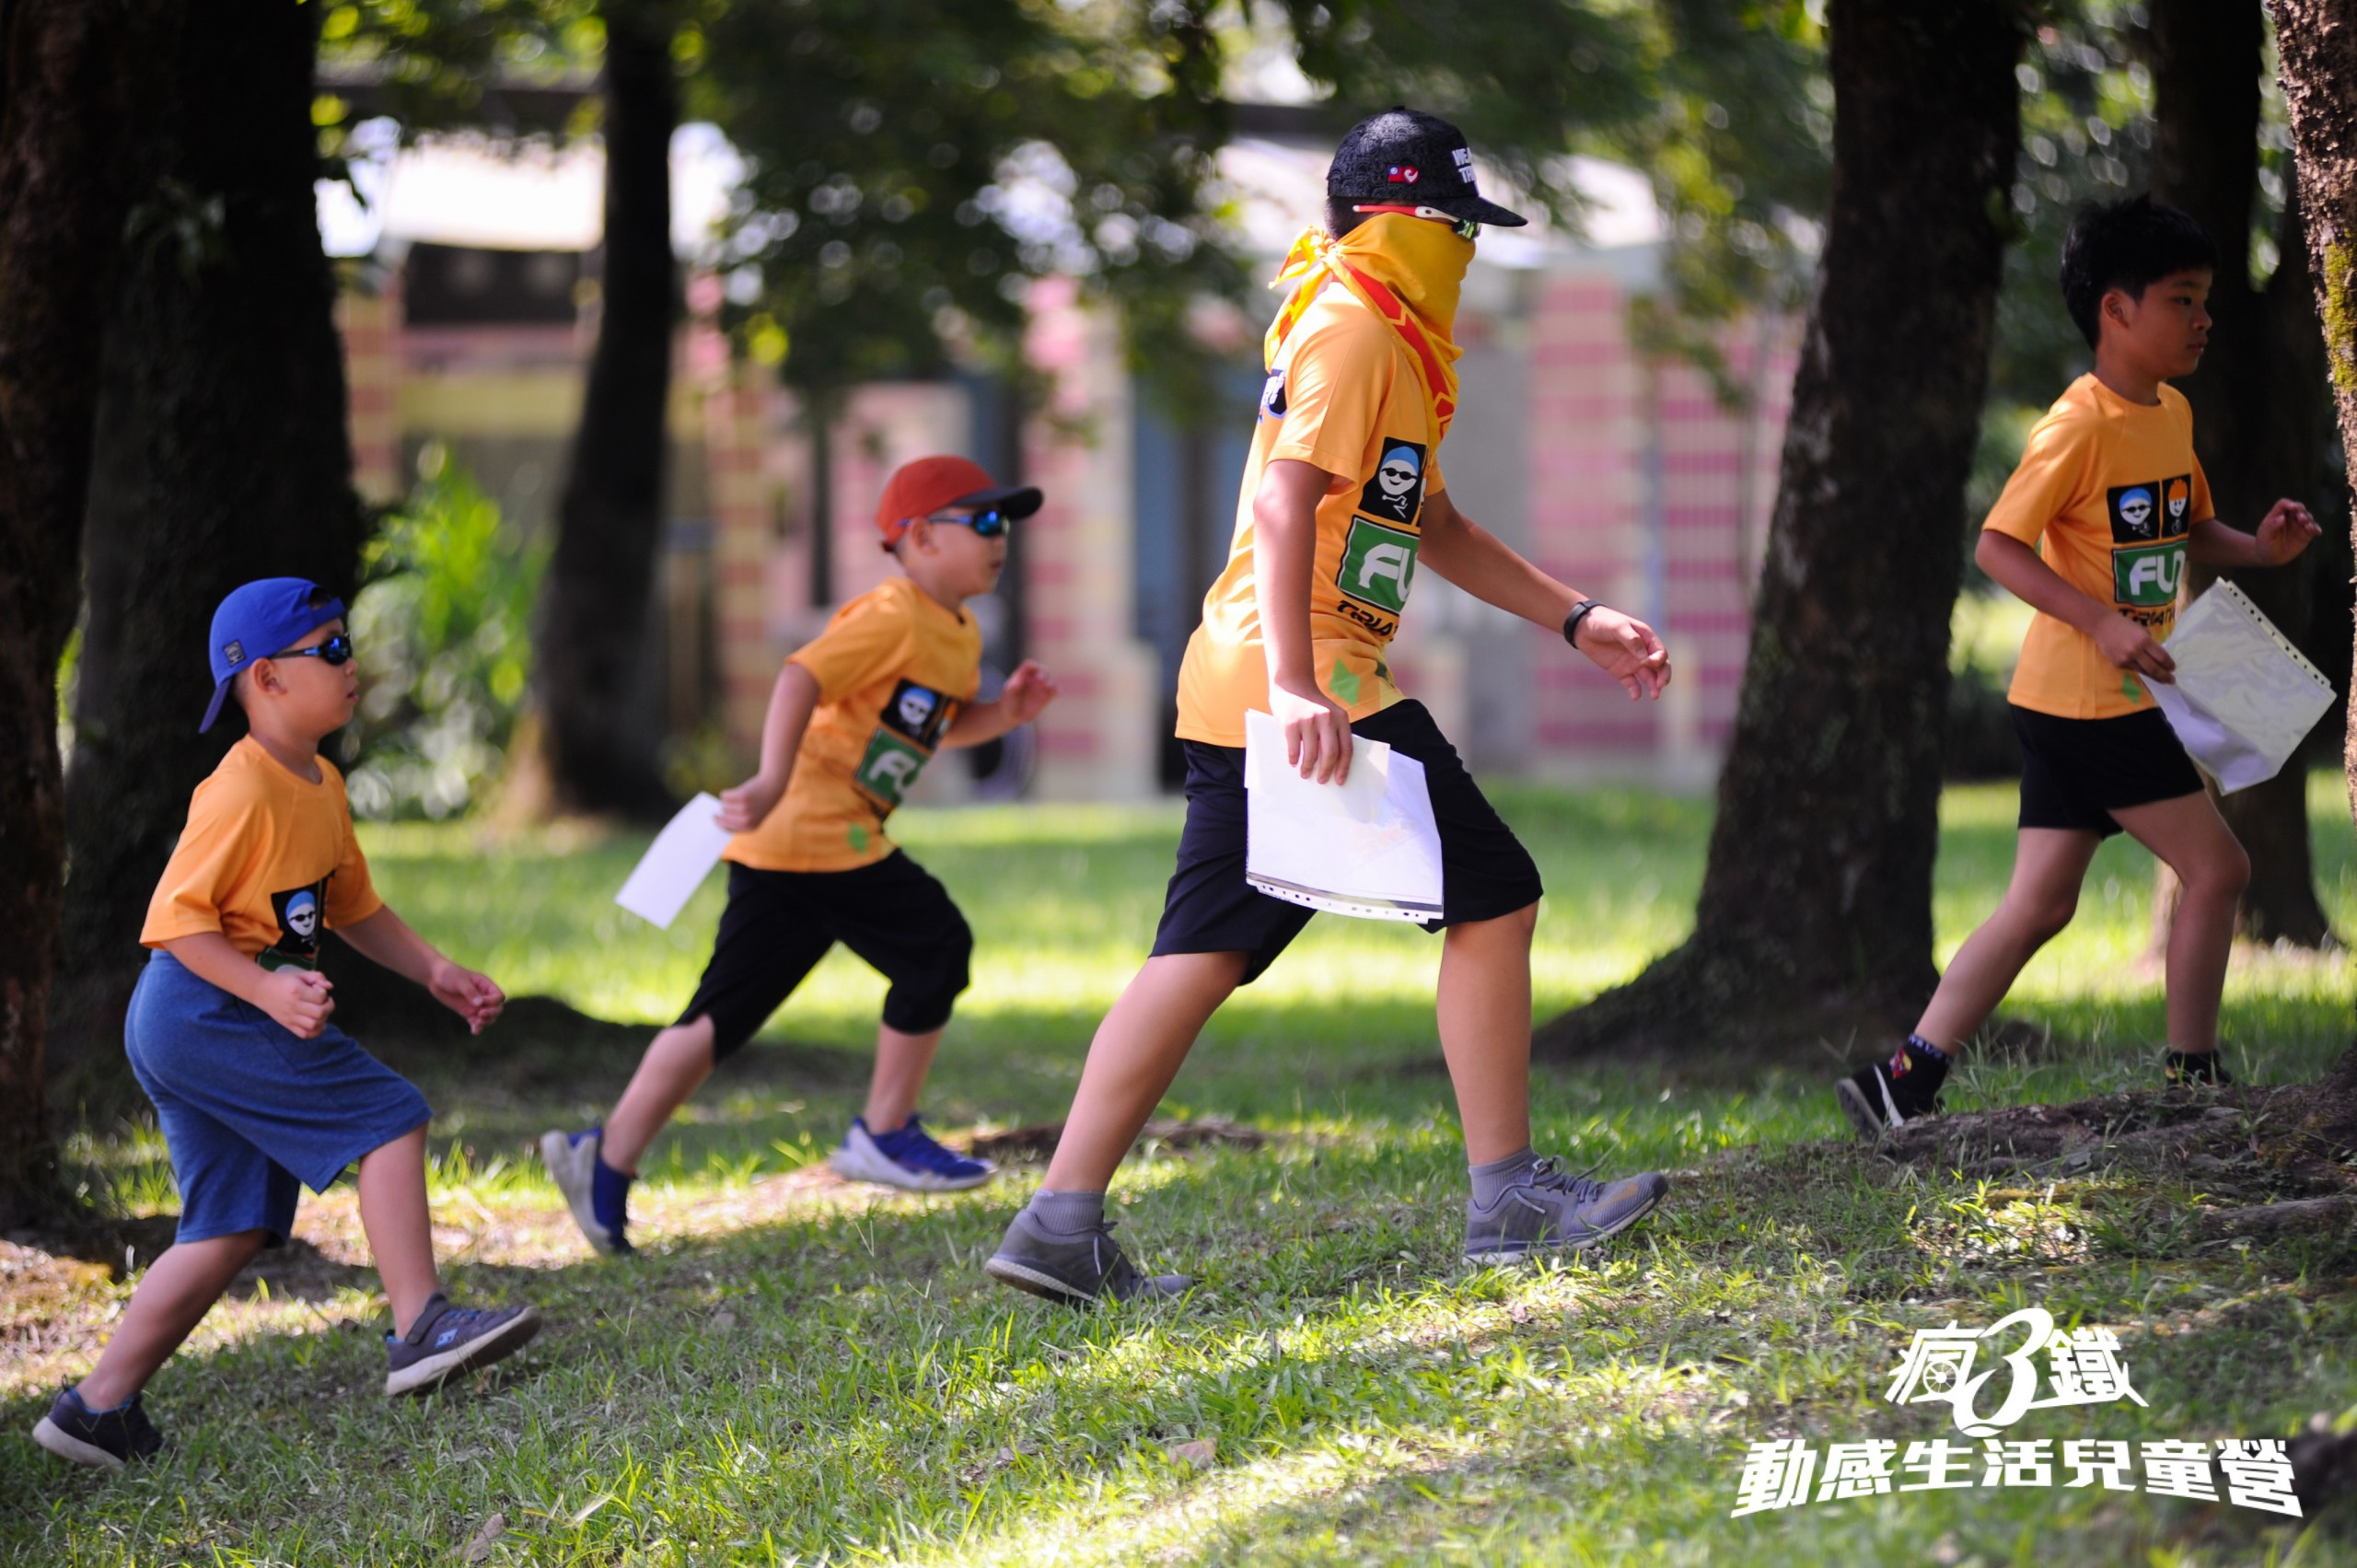 德築-DEZU-project-Fun3sport-children-summer-camp-30